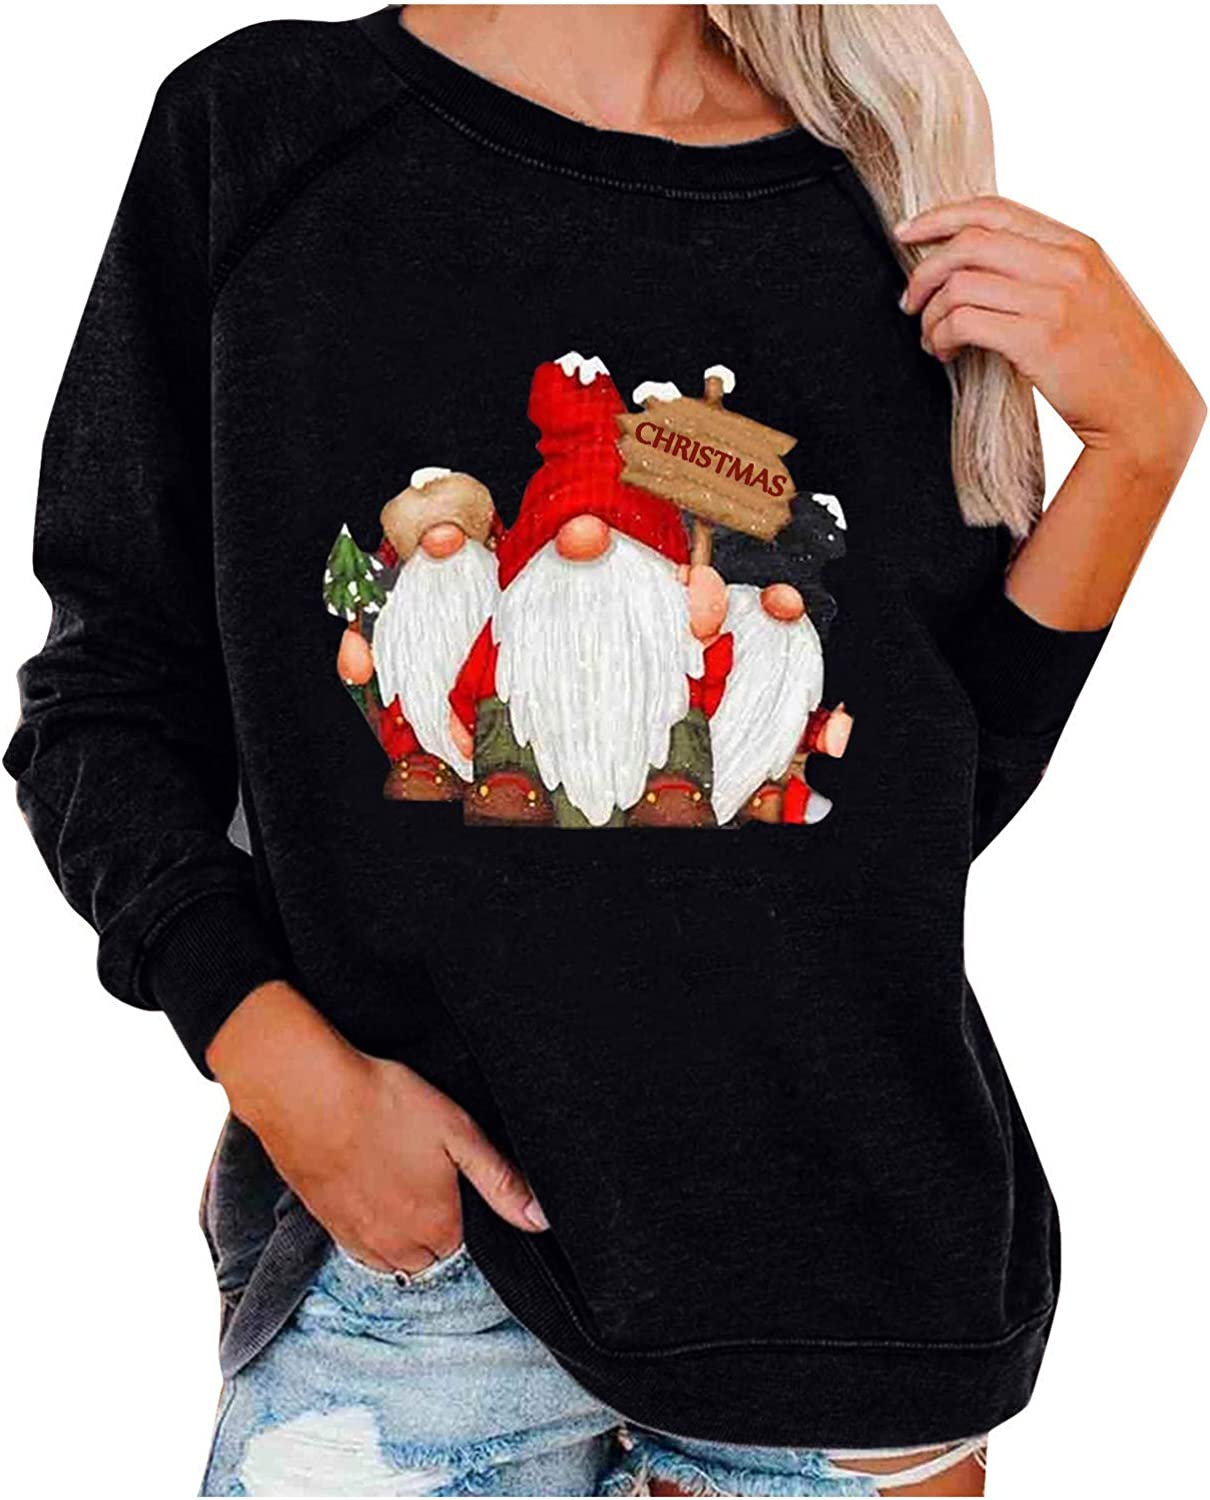 Womens Sweaters,Christmas Women's Casual Christmas Print Neck Round Long Sleeves Pullover Sweatshirt